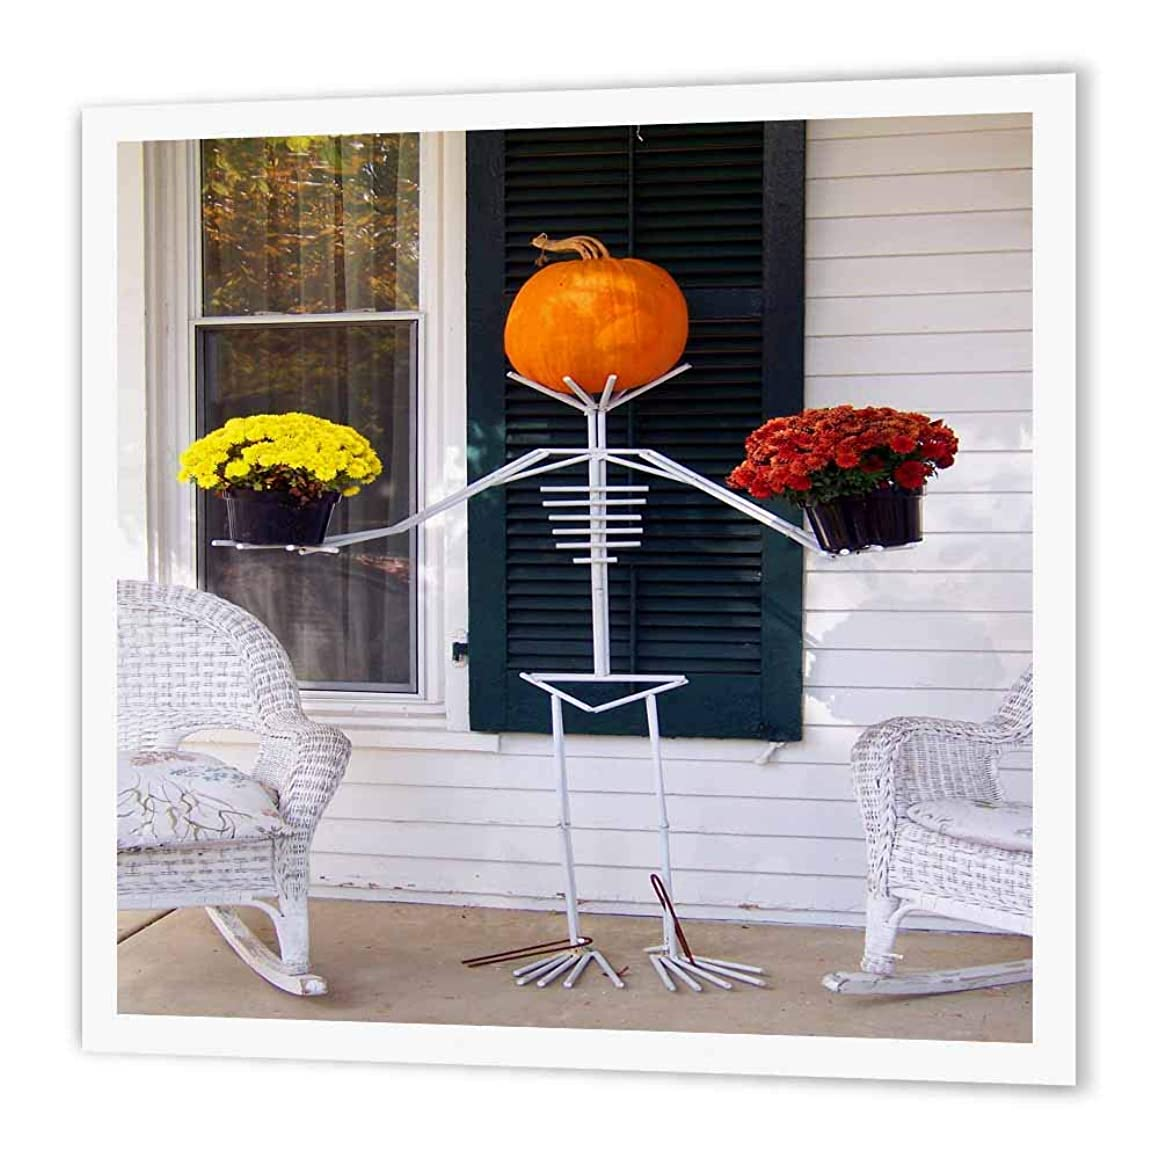 3dRose ht_156776_3 Skeleton, Pumpkin and Flower Holding Stand Iron on Heat Transfer Paper for White Material, 10 by 10-Inch